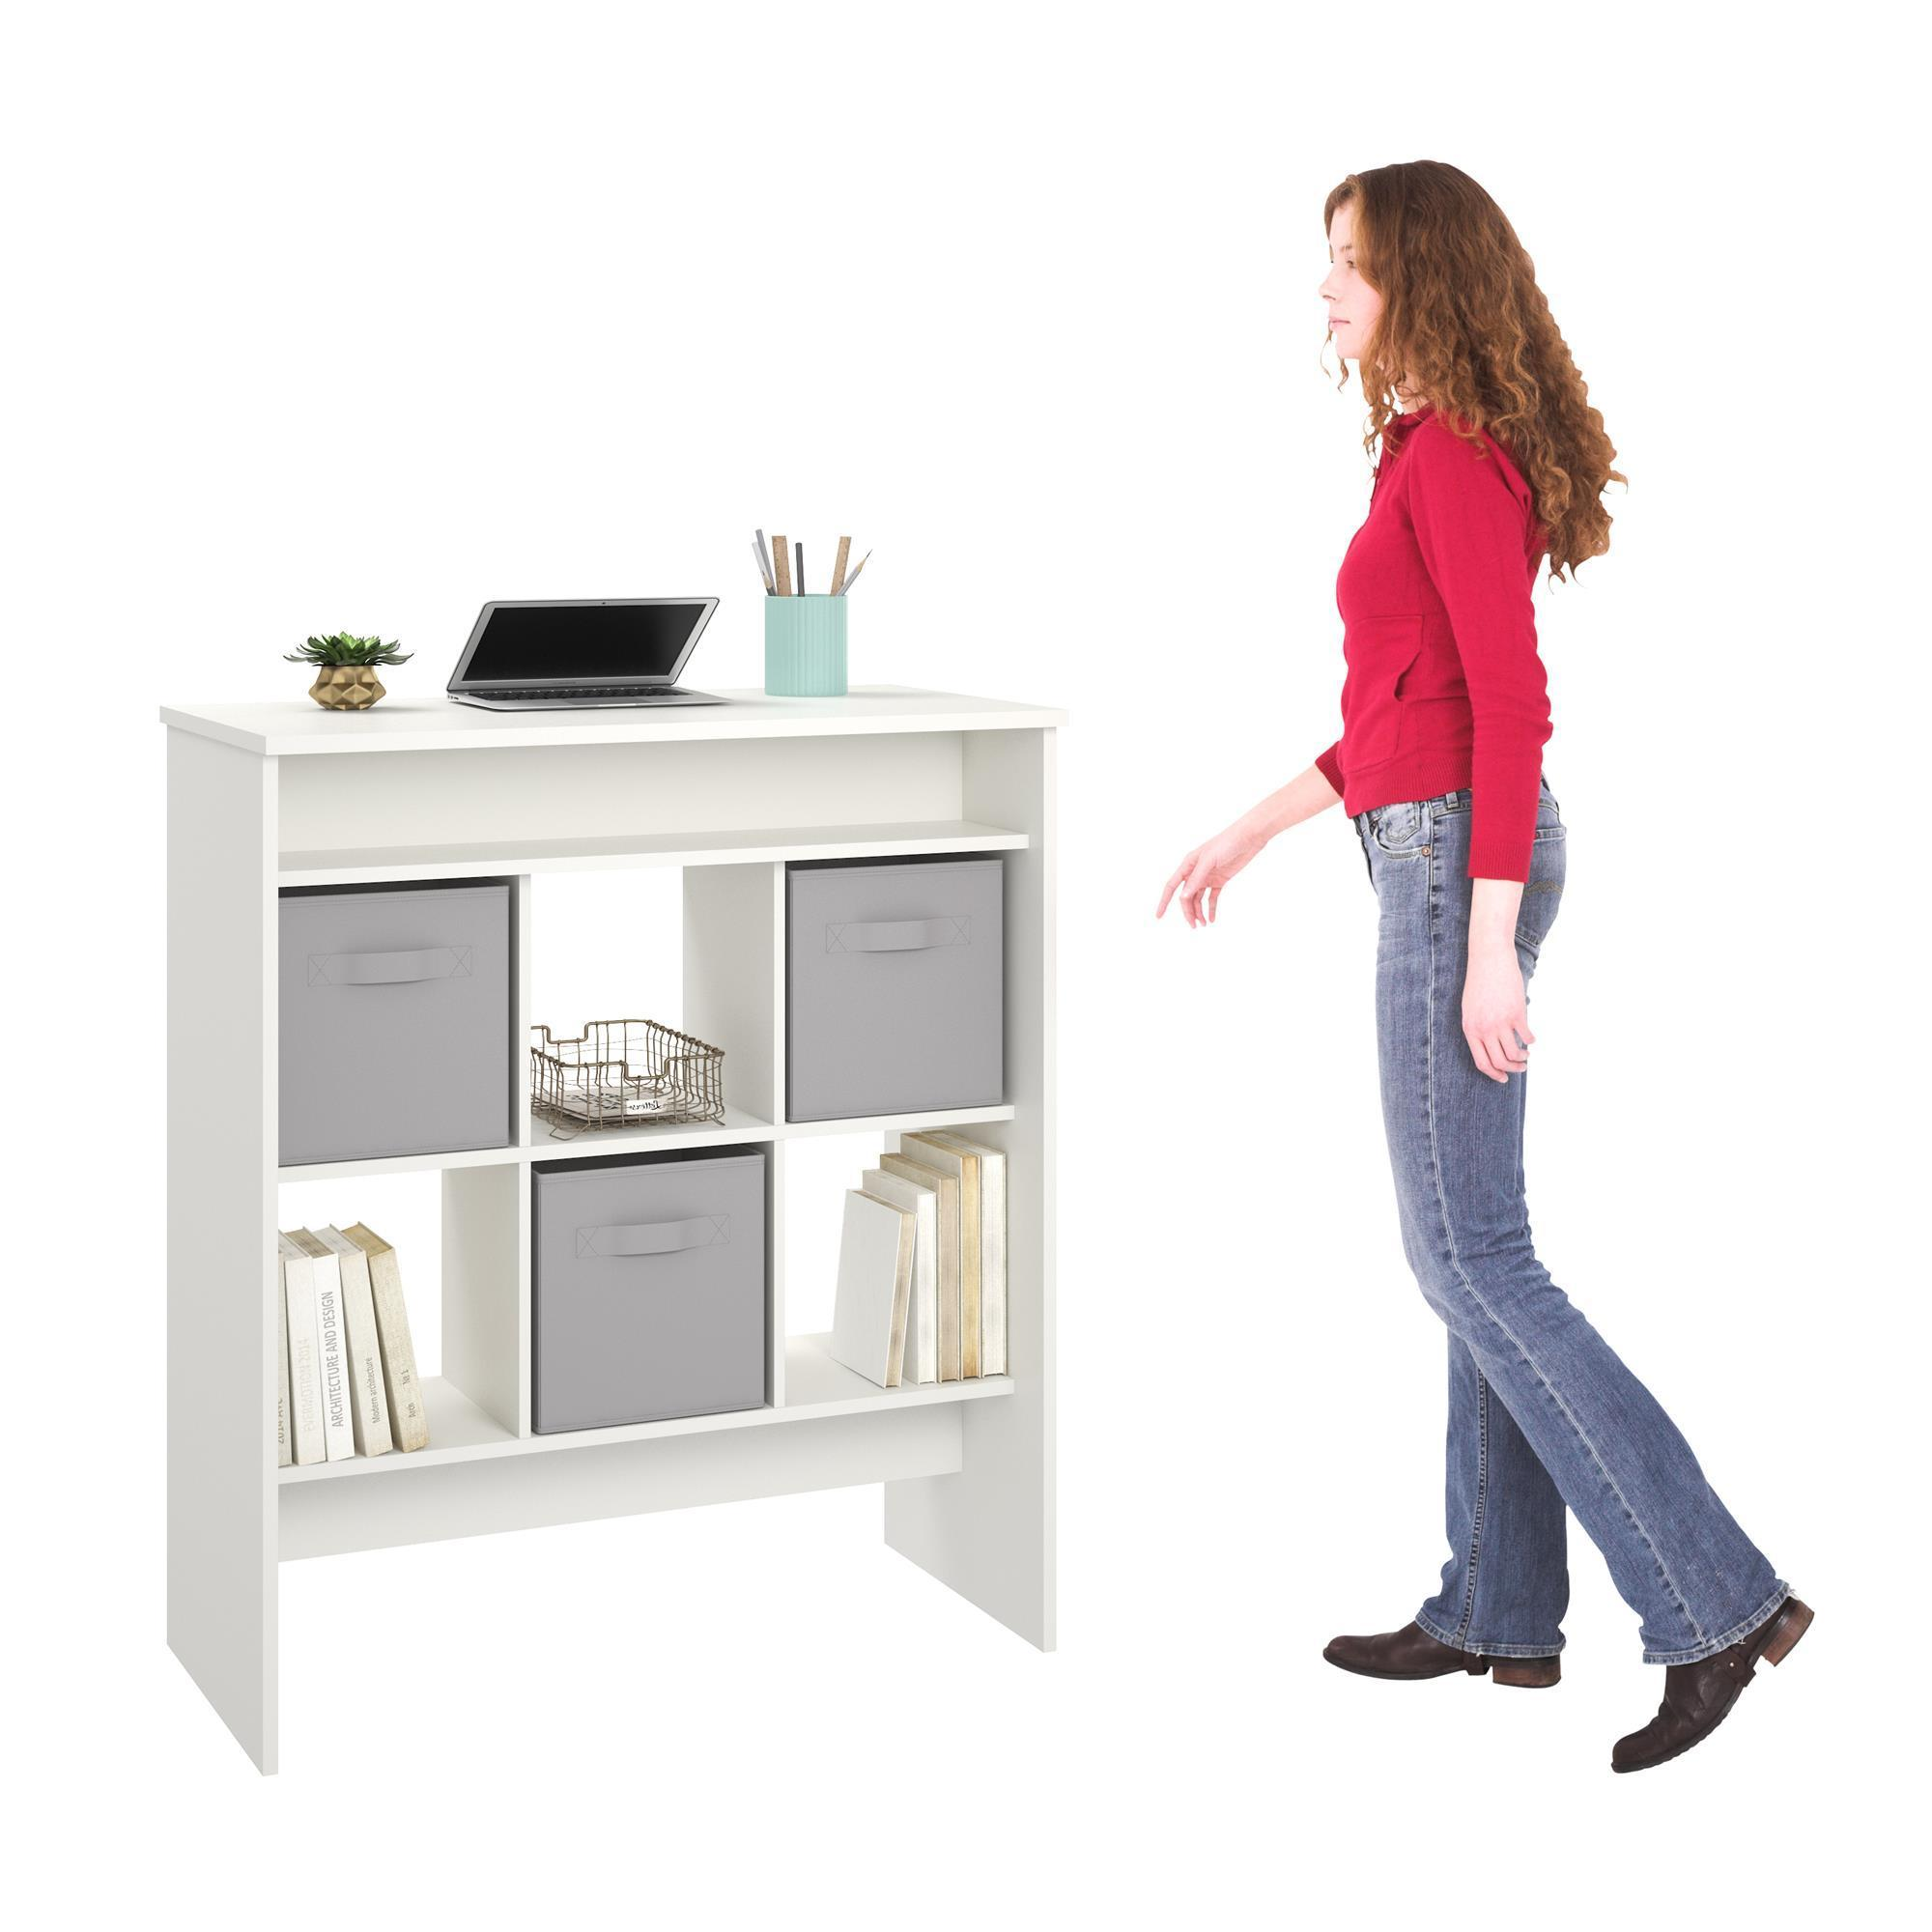 shipping drawer desk today greene home standing free garden avenue with overstock drawers product oakmont